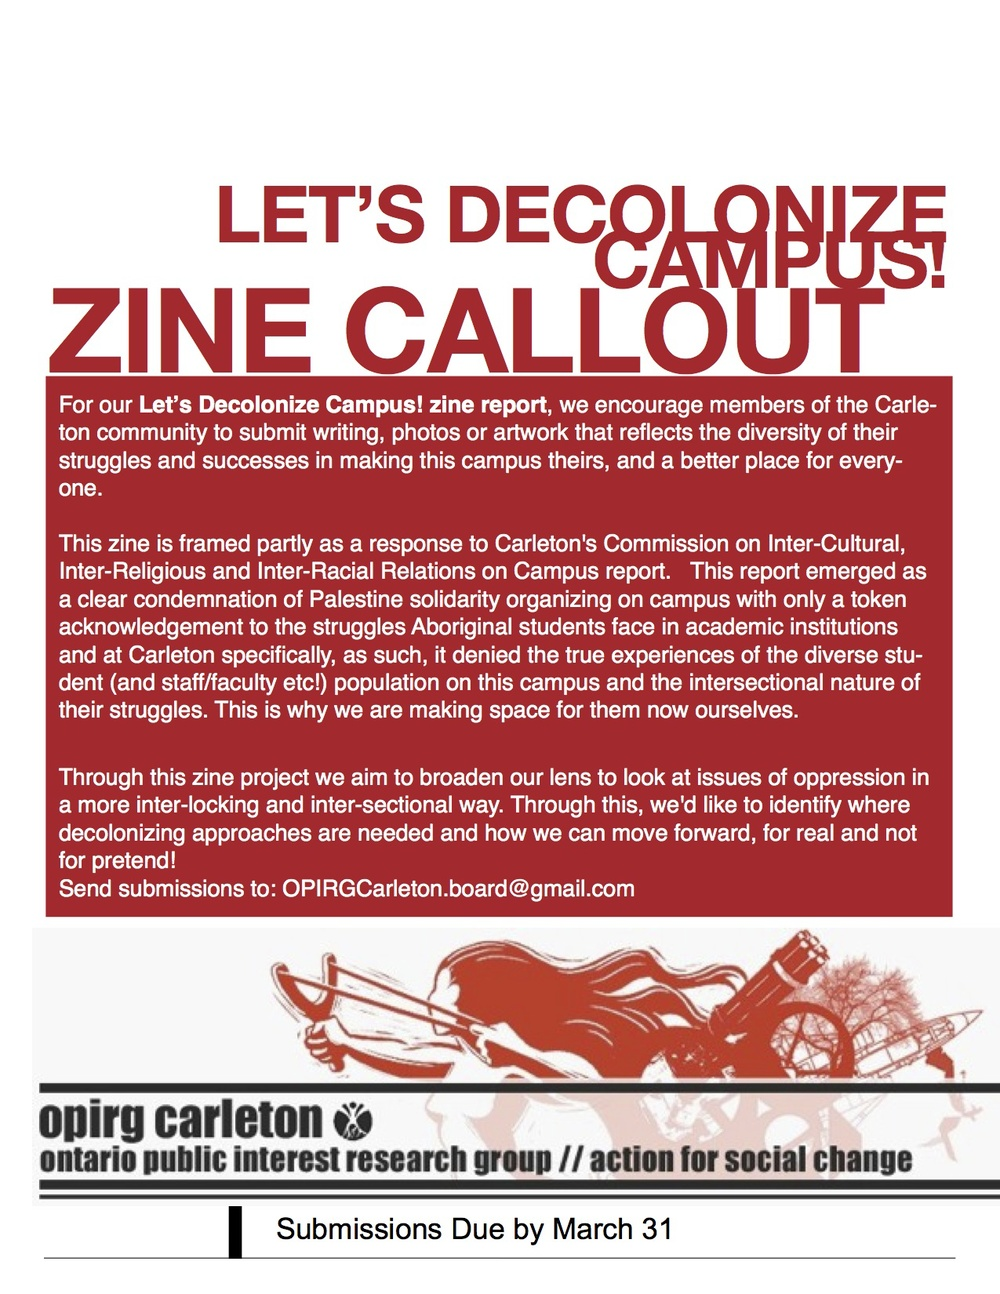 Let's Decolonize Campus! zine report